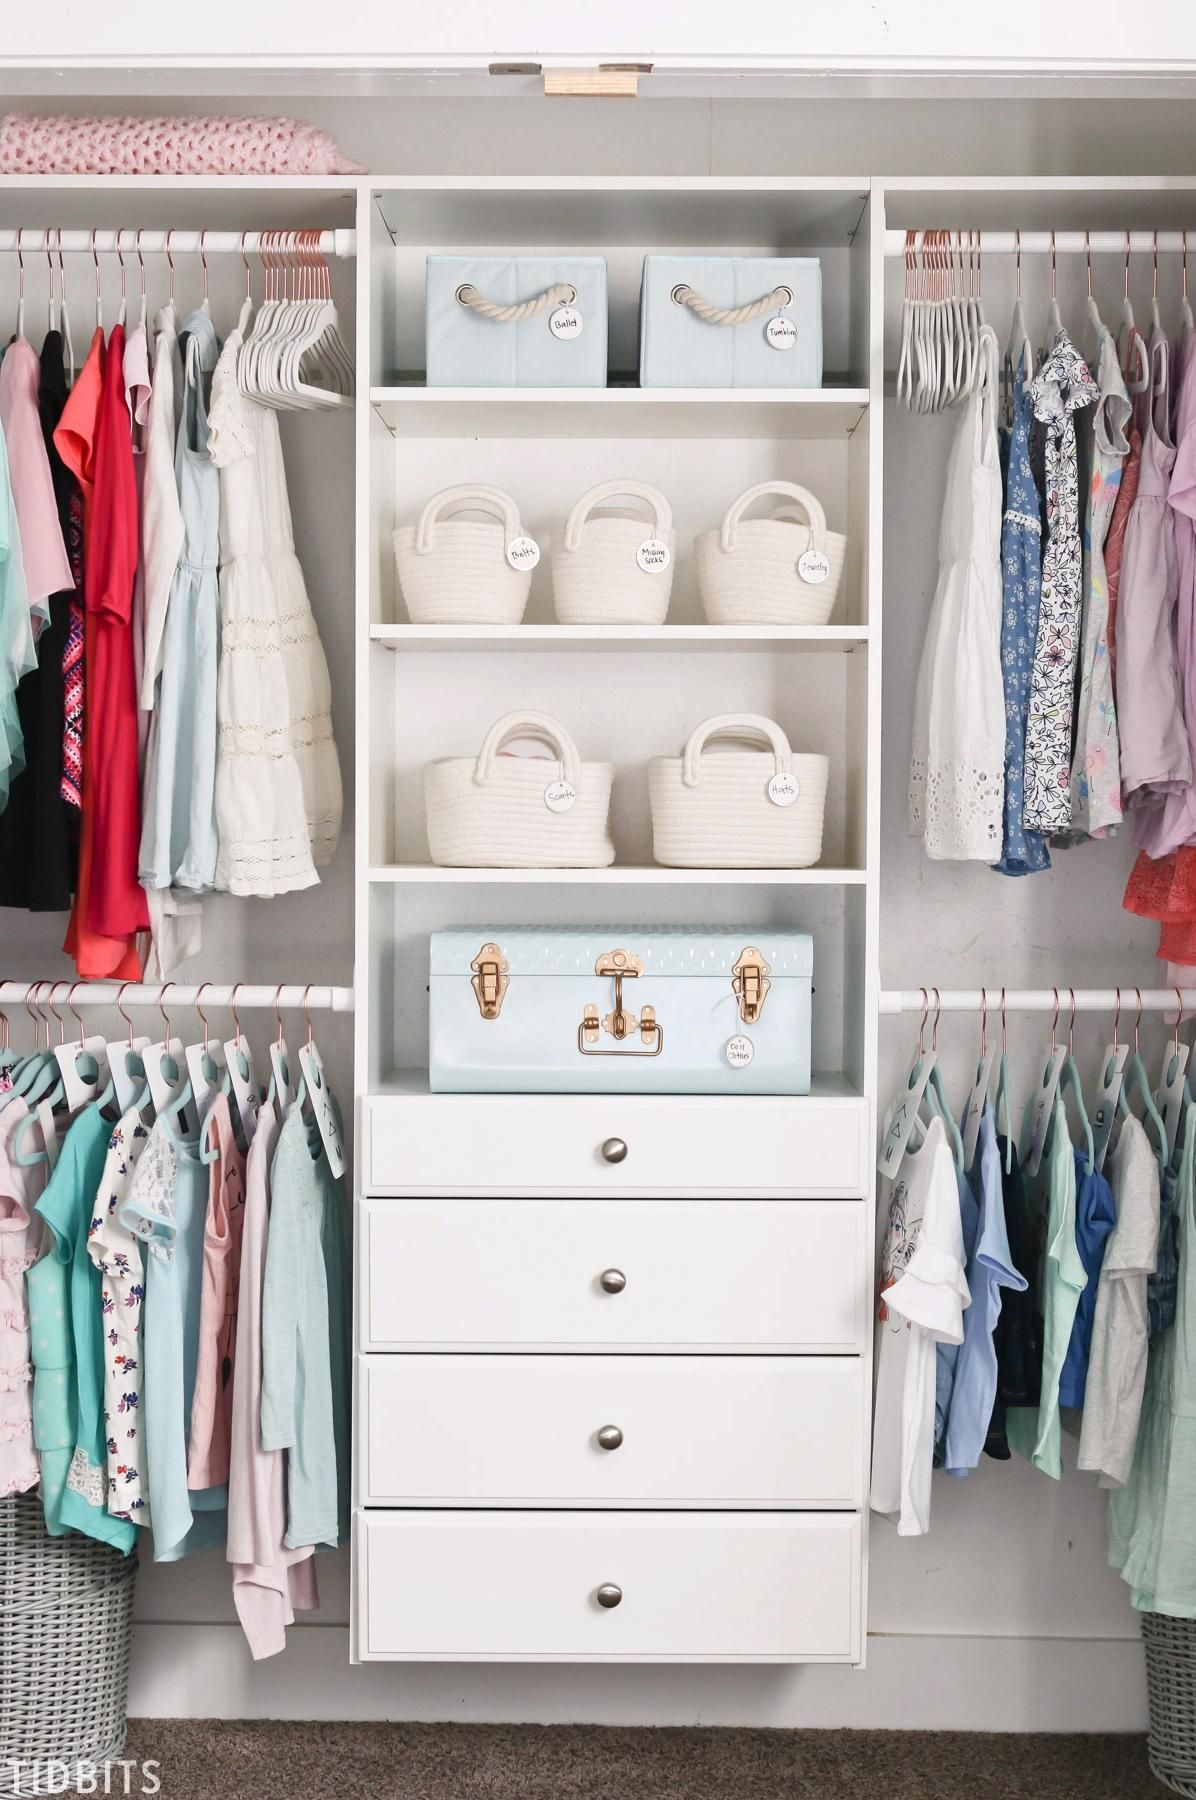 8 Kids Closet Organization tips to help this space look, feel and function better. My girls have such an easy time keeping the space clean and tidy after we put this closet organization system in place! #kidscloset #closetorganization #organization #camitidbits #organizing #closet #kids #camitidbits